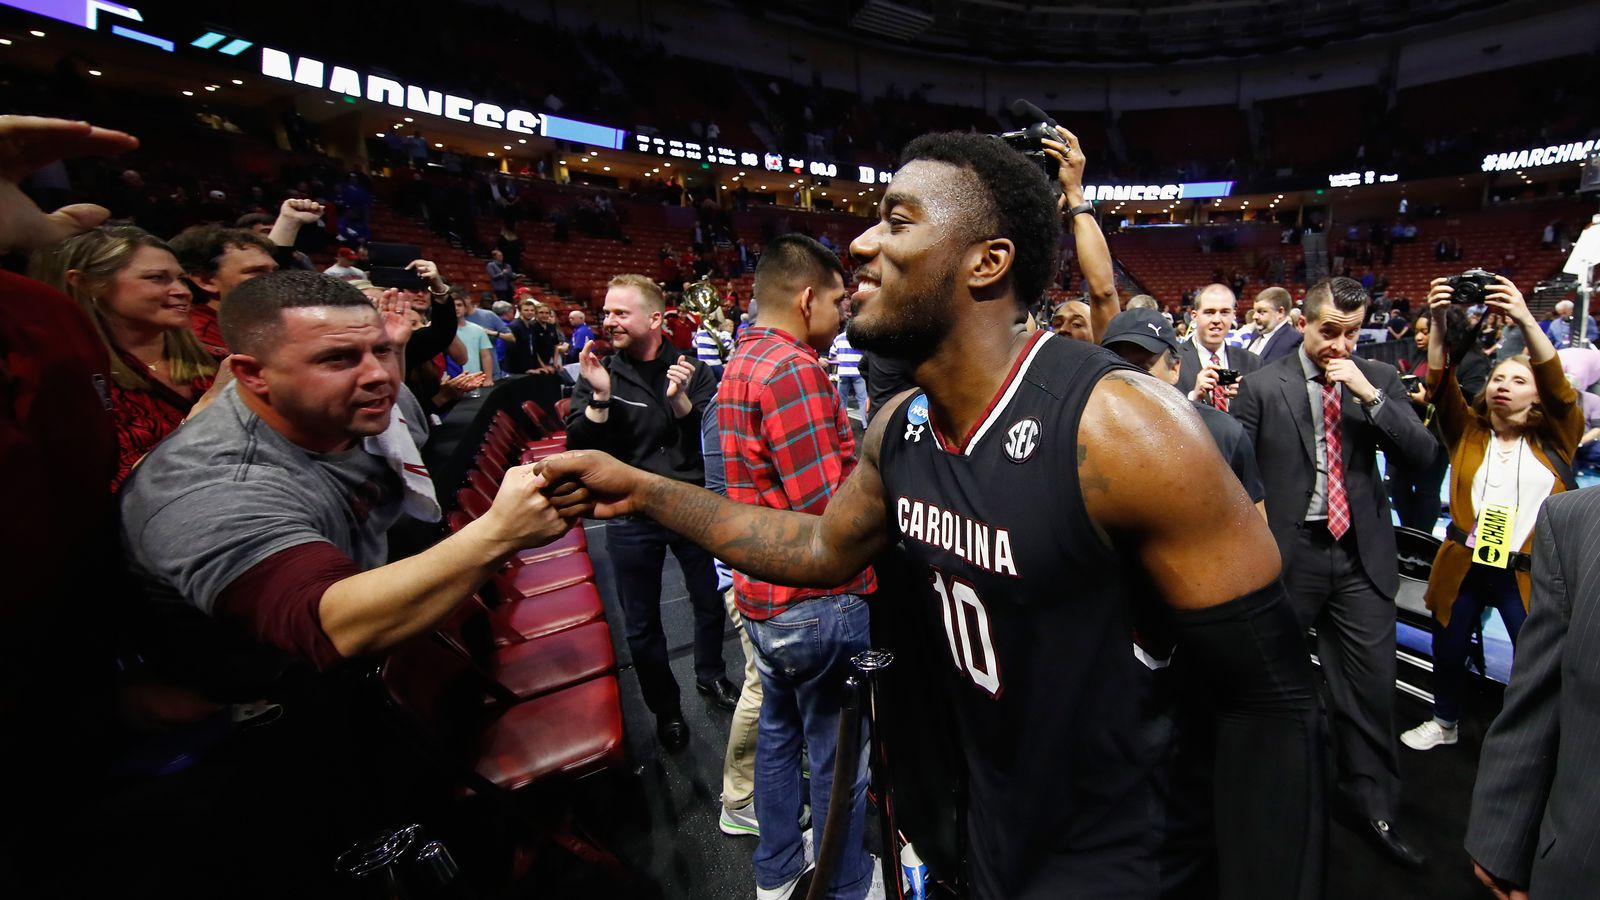 South Carolina Fans Brought The Sec Chant To March